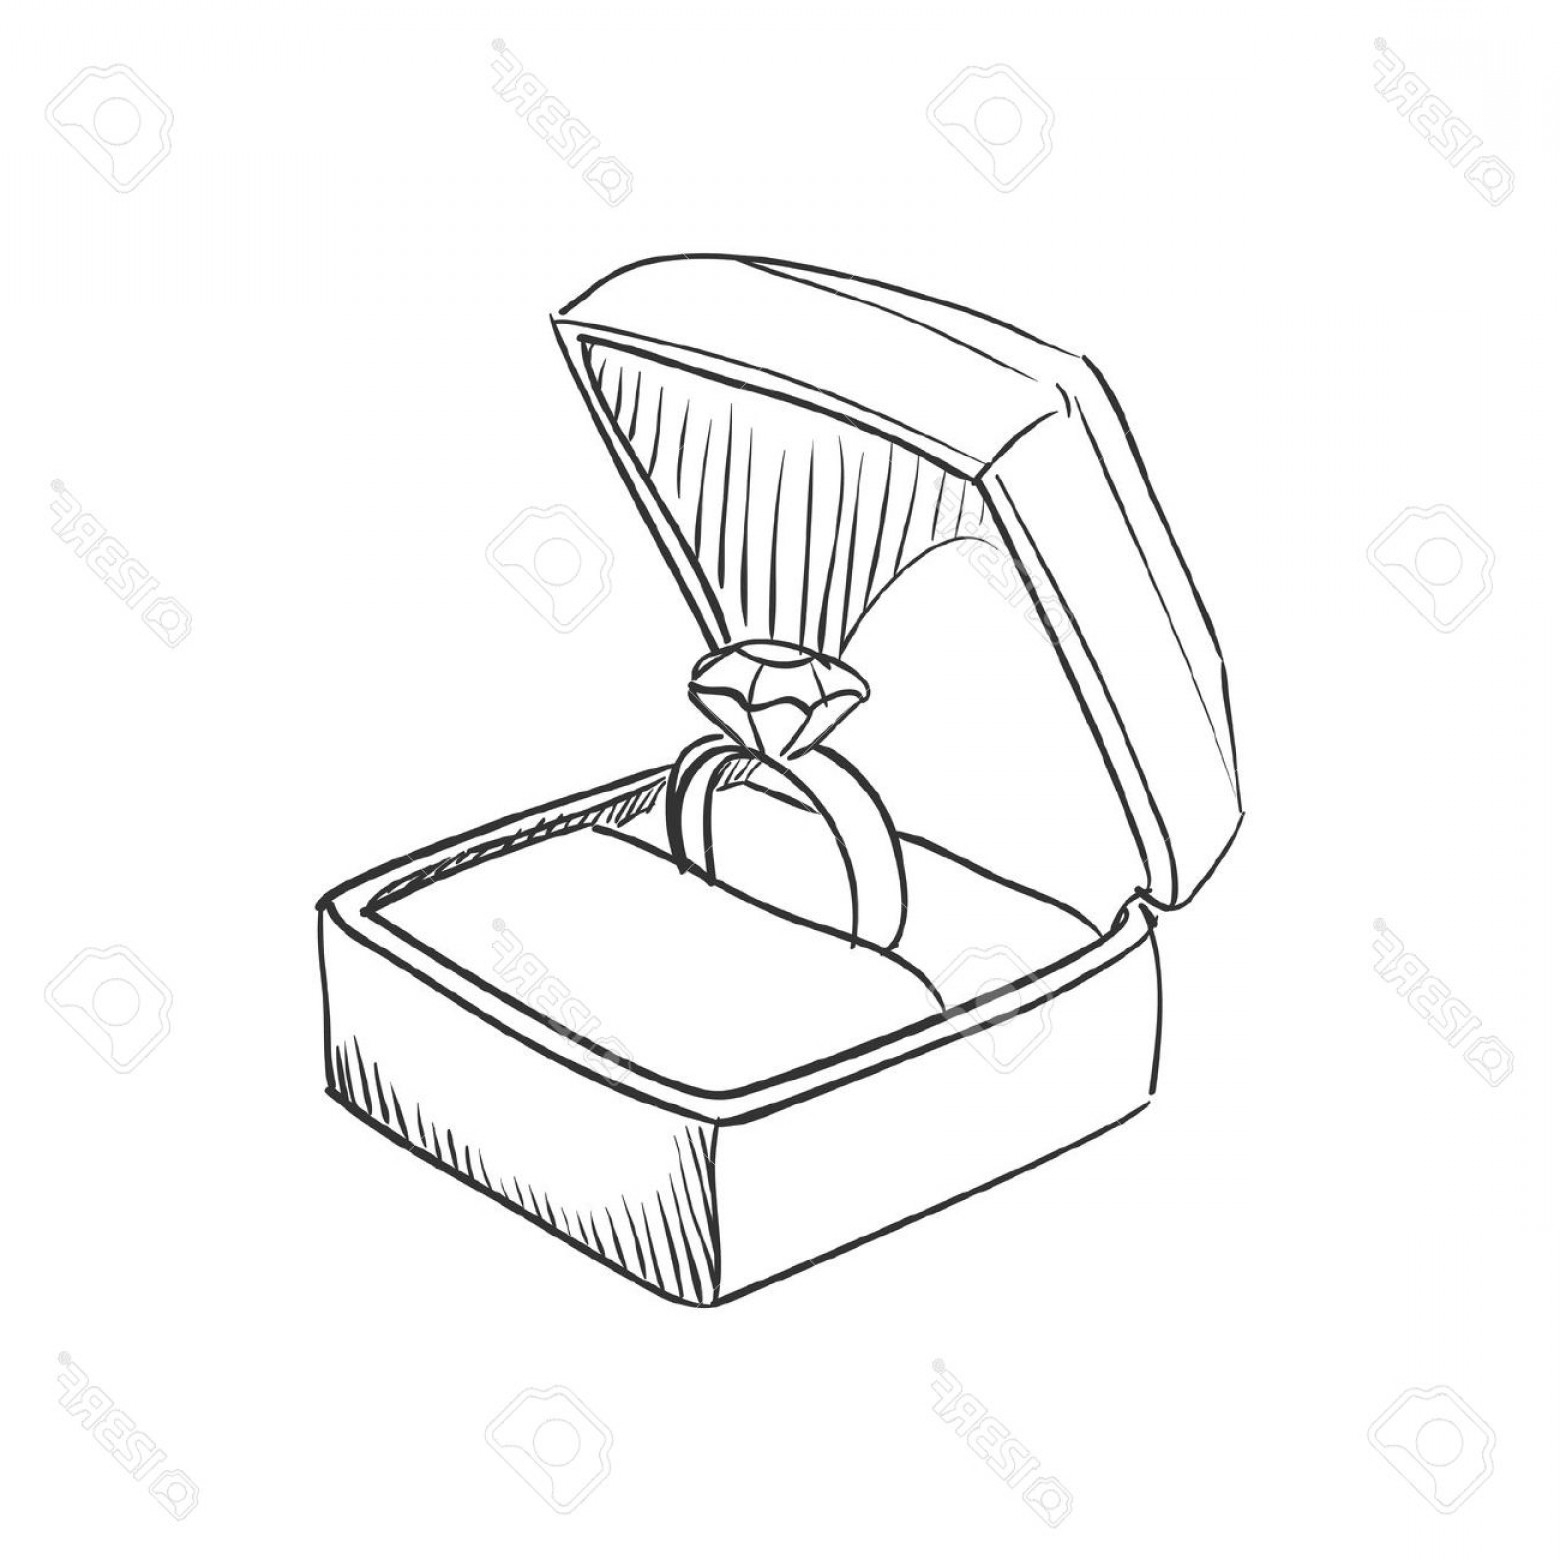 1560x1560 Wedding Ring Drawing Wedding Rings Ring Drawing Easy How To Draw A